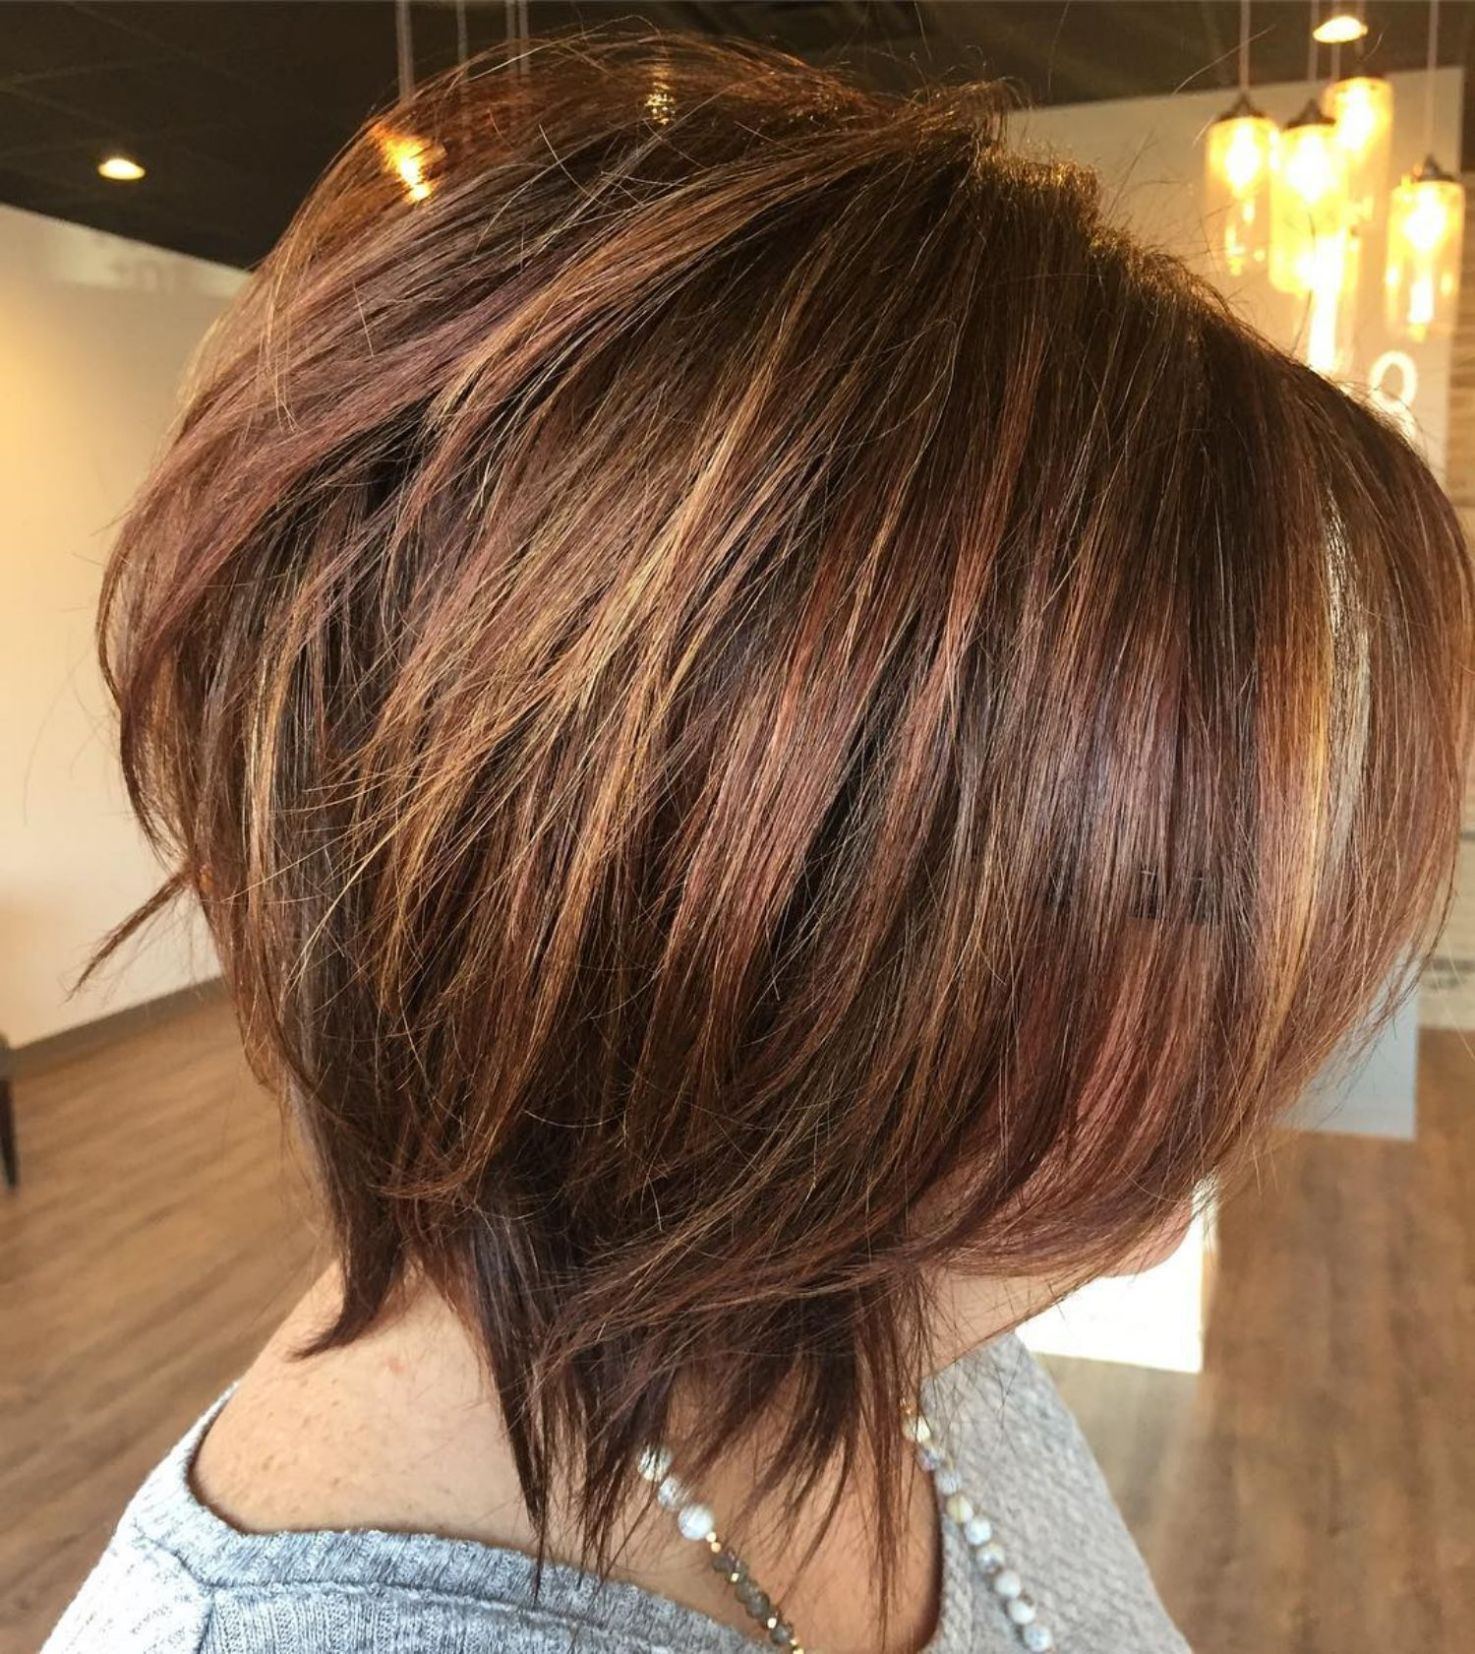 Photo of 70 Cute and Easy-To-Style Short Layered Hairstyles